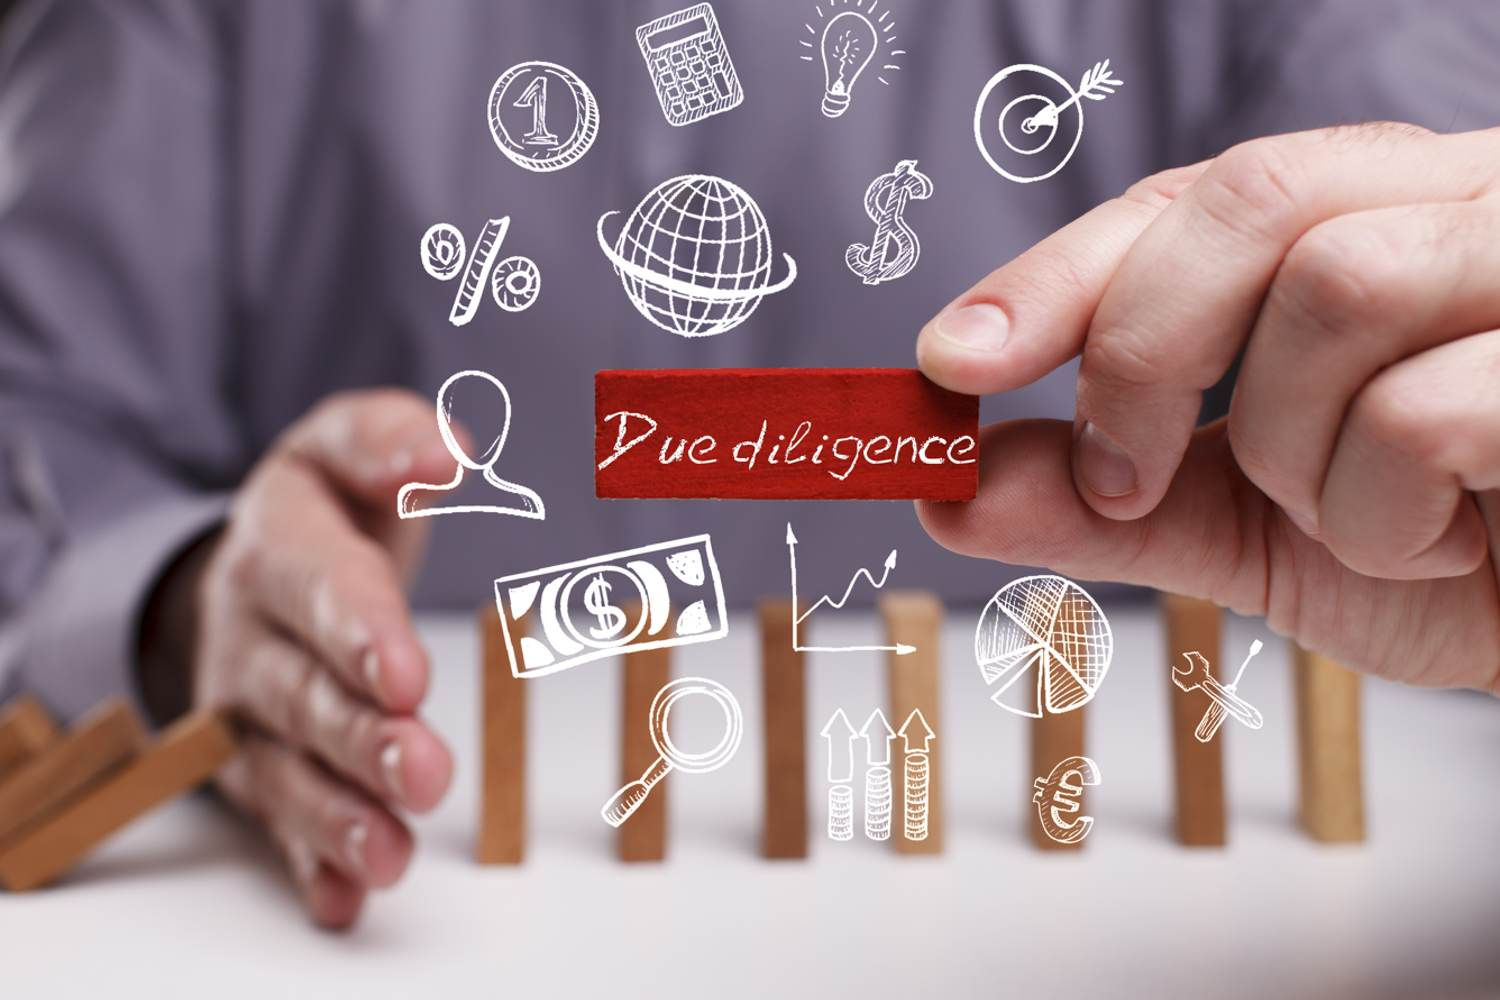 What a financial director needs to know about due diligence